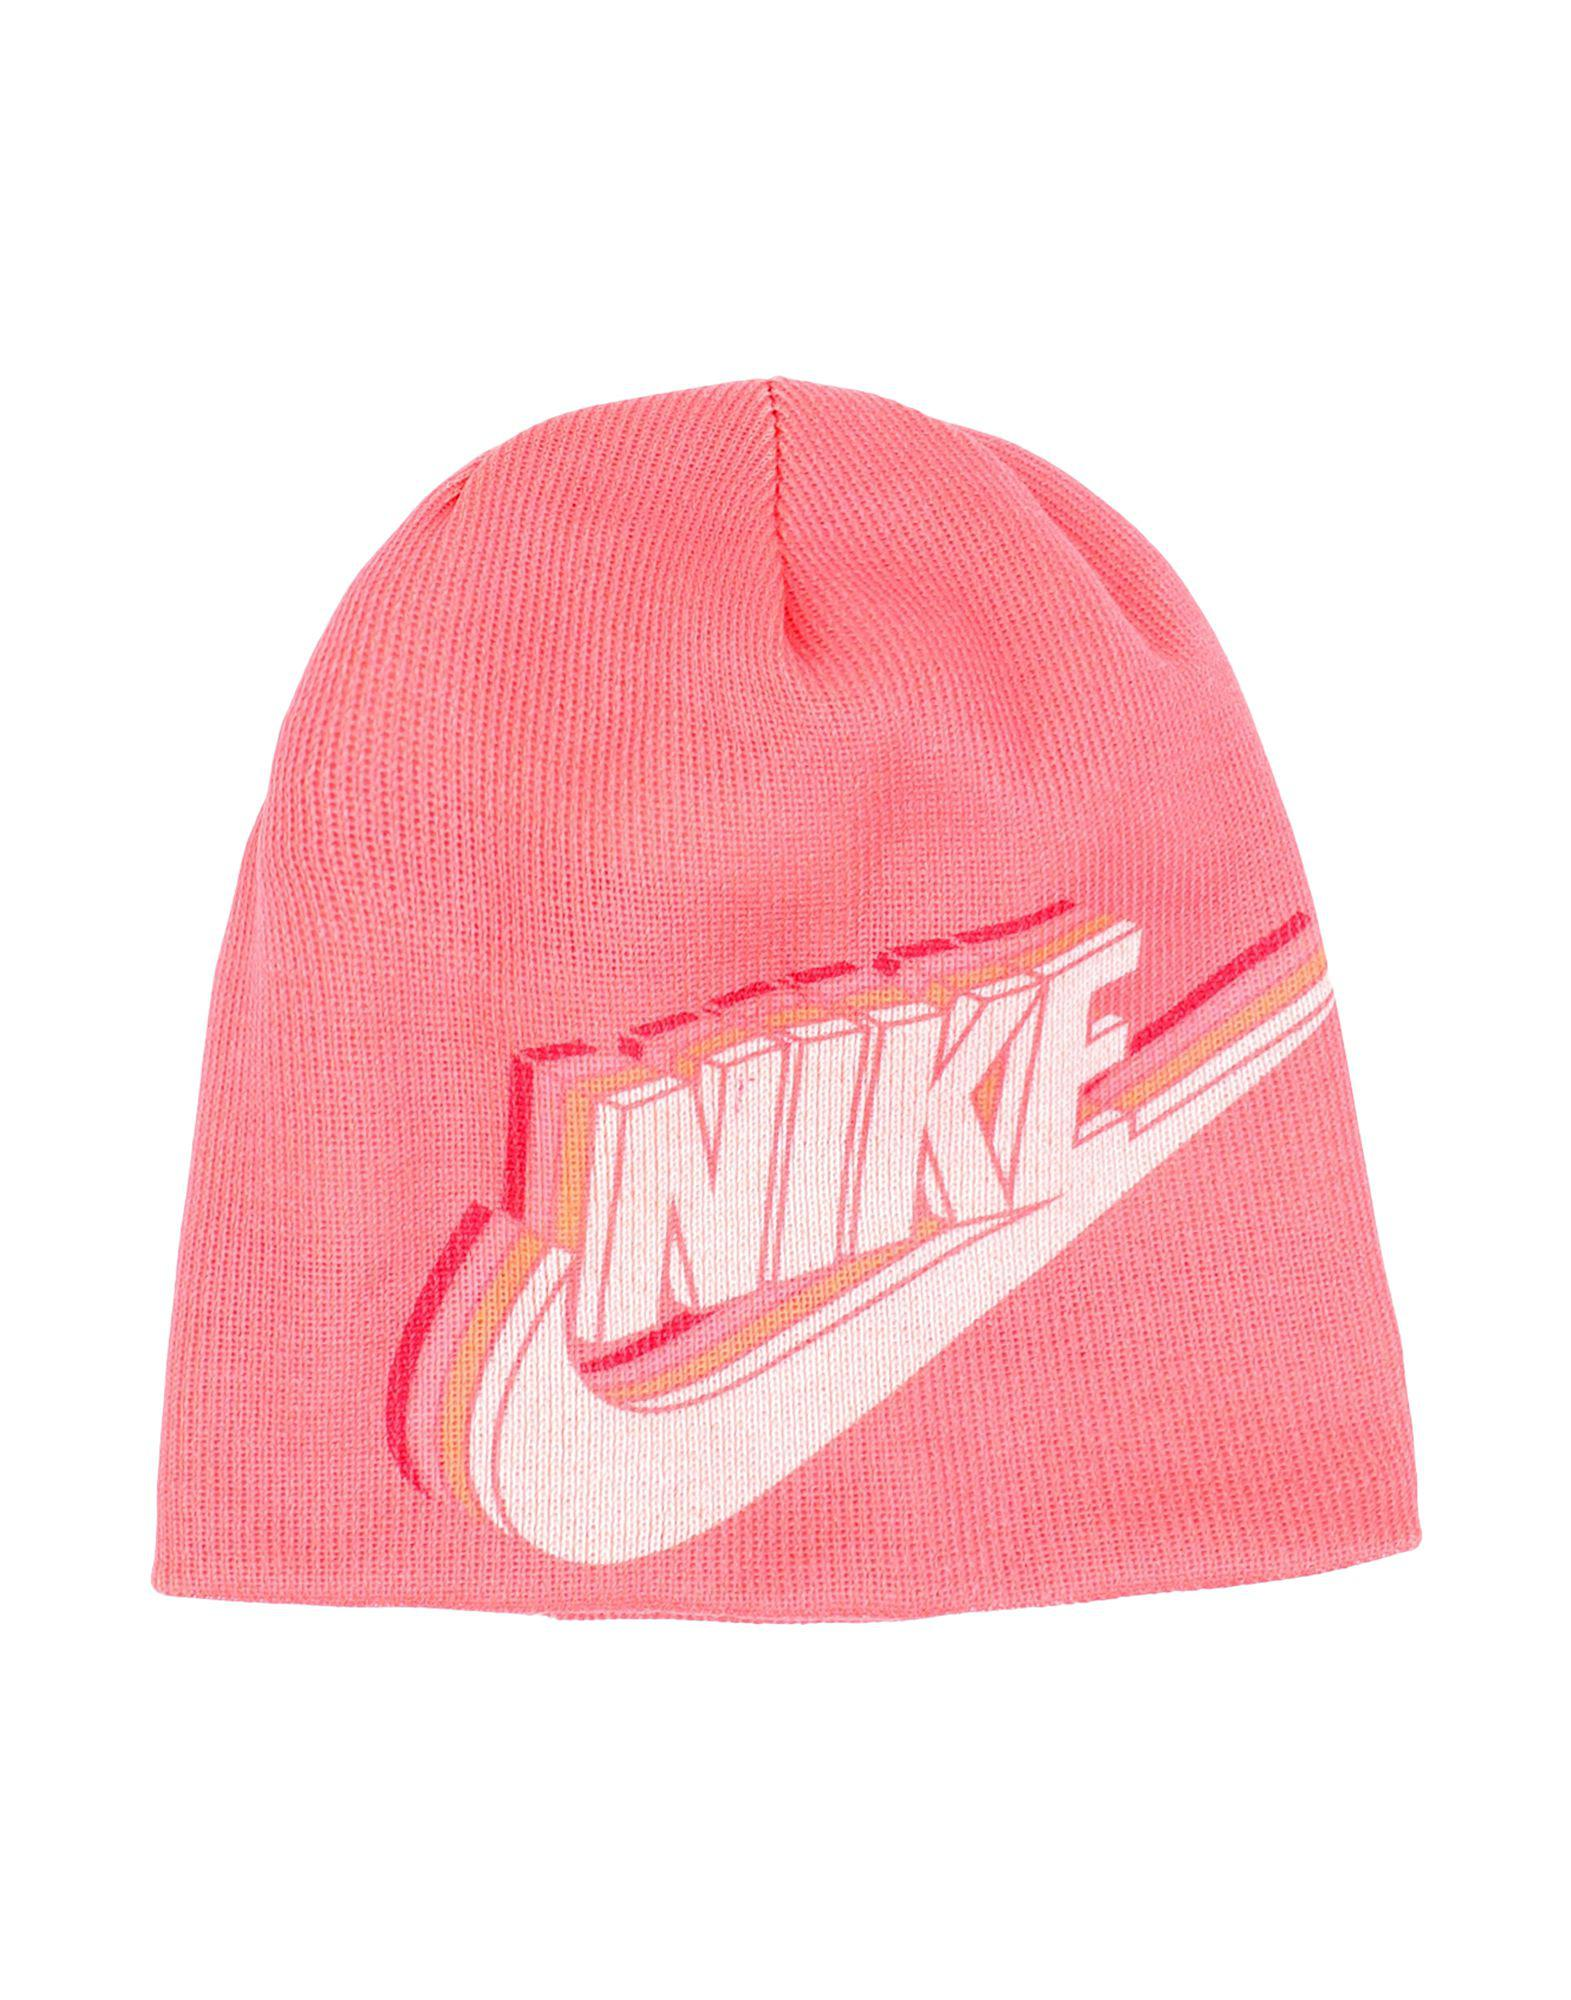 73a119fae04 Nike Hat in Pink - Lyst